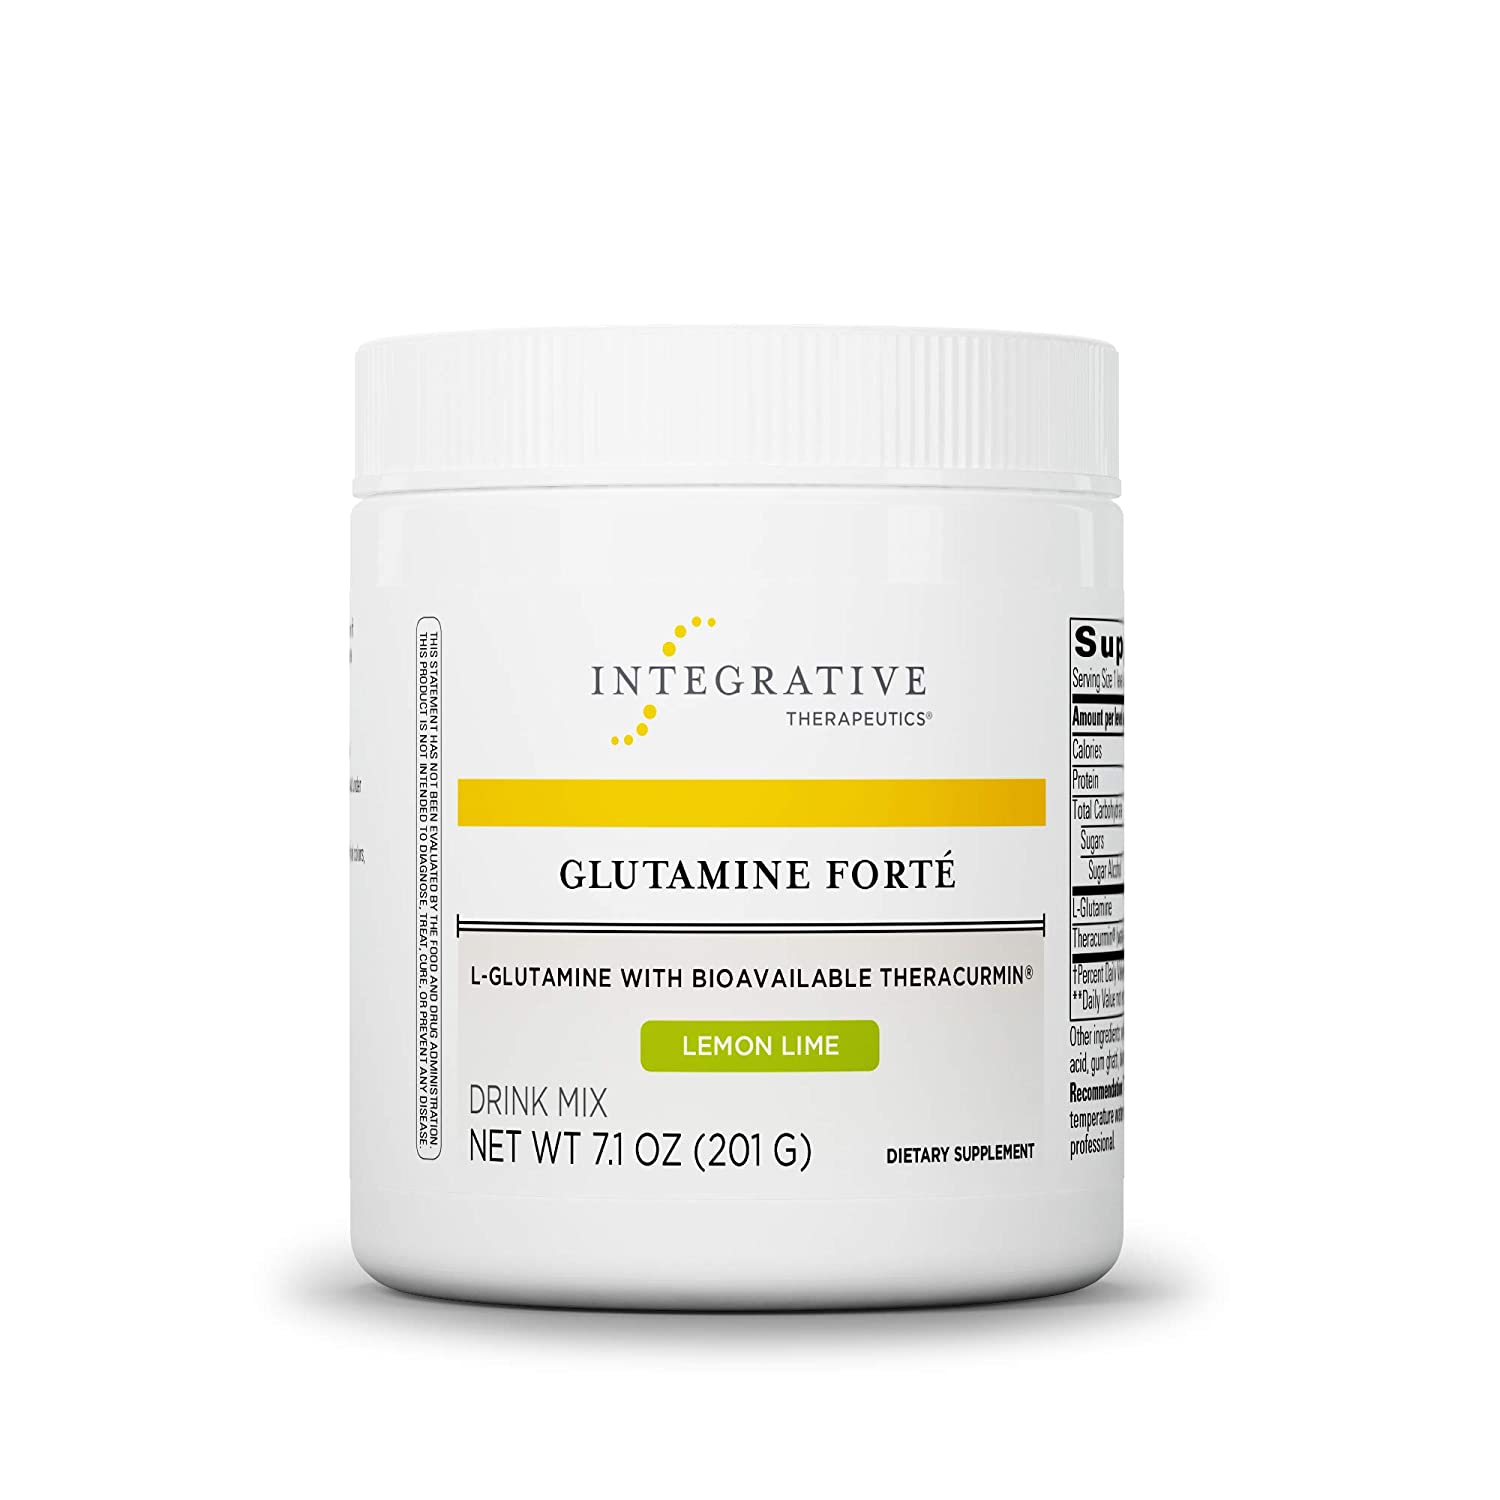 Integrative Therapeutics – Glutamine Fort – L-Glutamine with Bioavailable Theracurmin – Lemon Lime Flavor – 7.1 oz